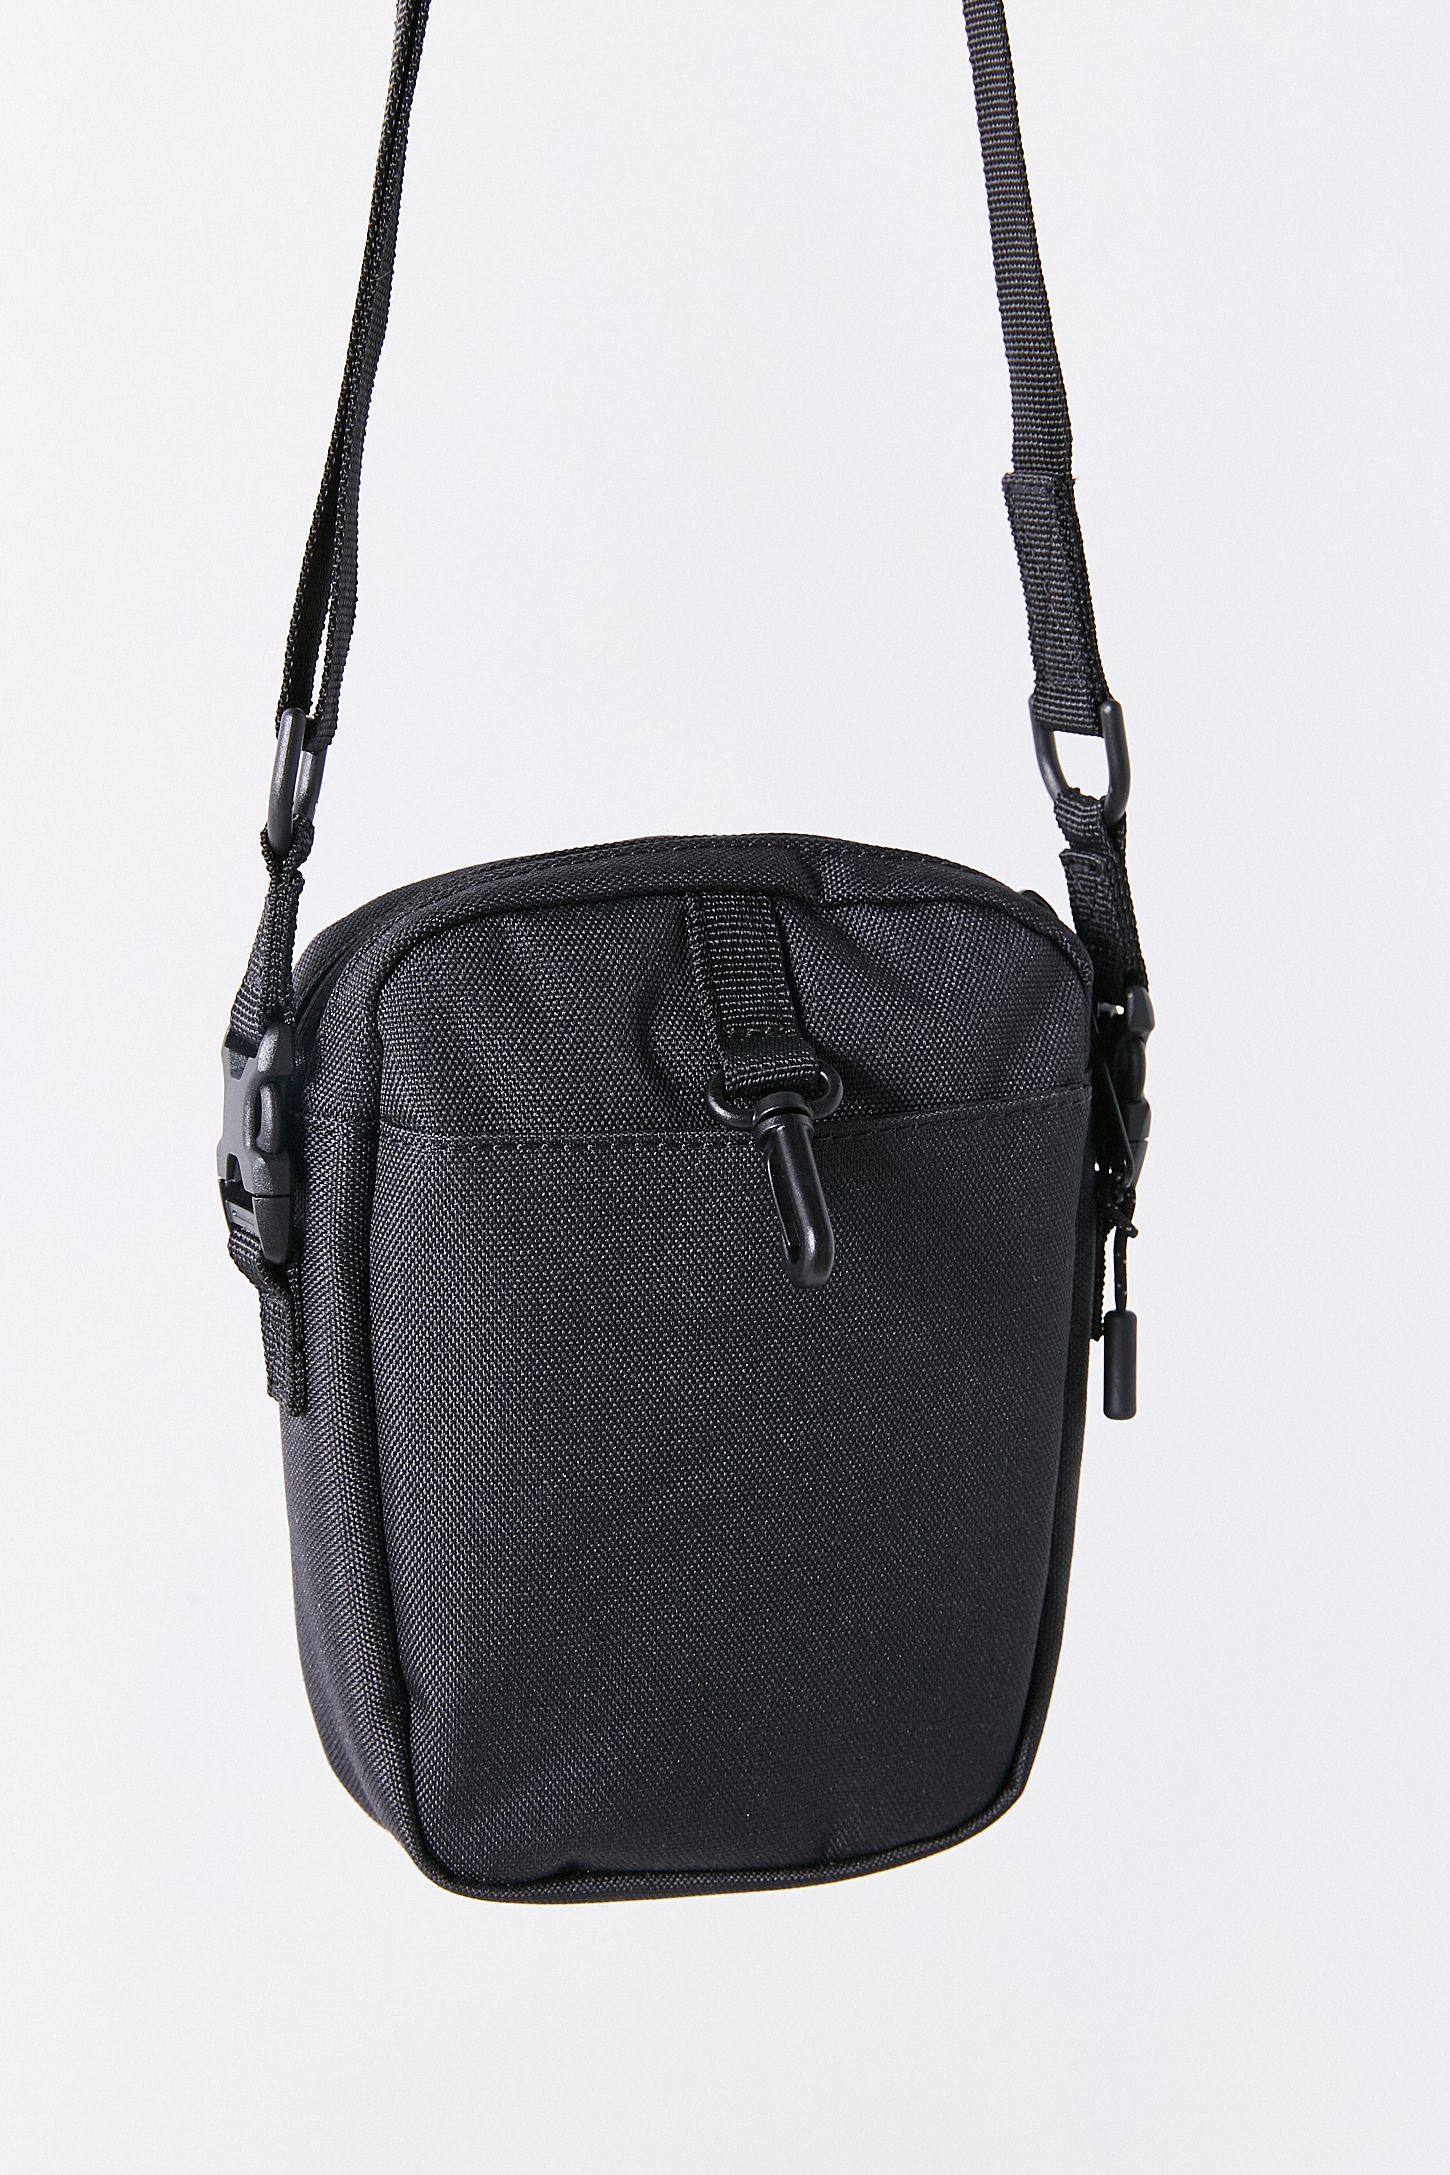 Slide View  5  Herschel Supply Co. Cruz Crossbody Bag 445c1b2cc60aa